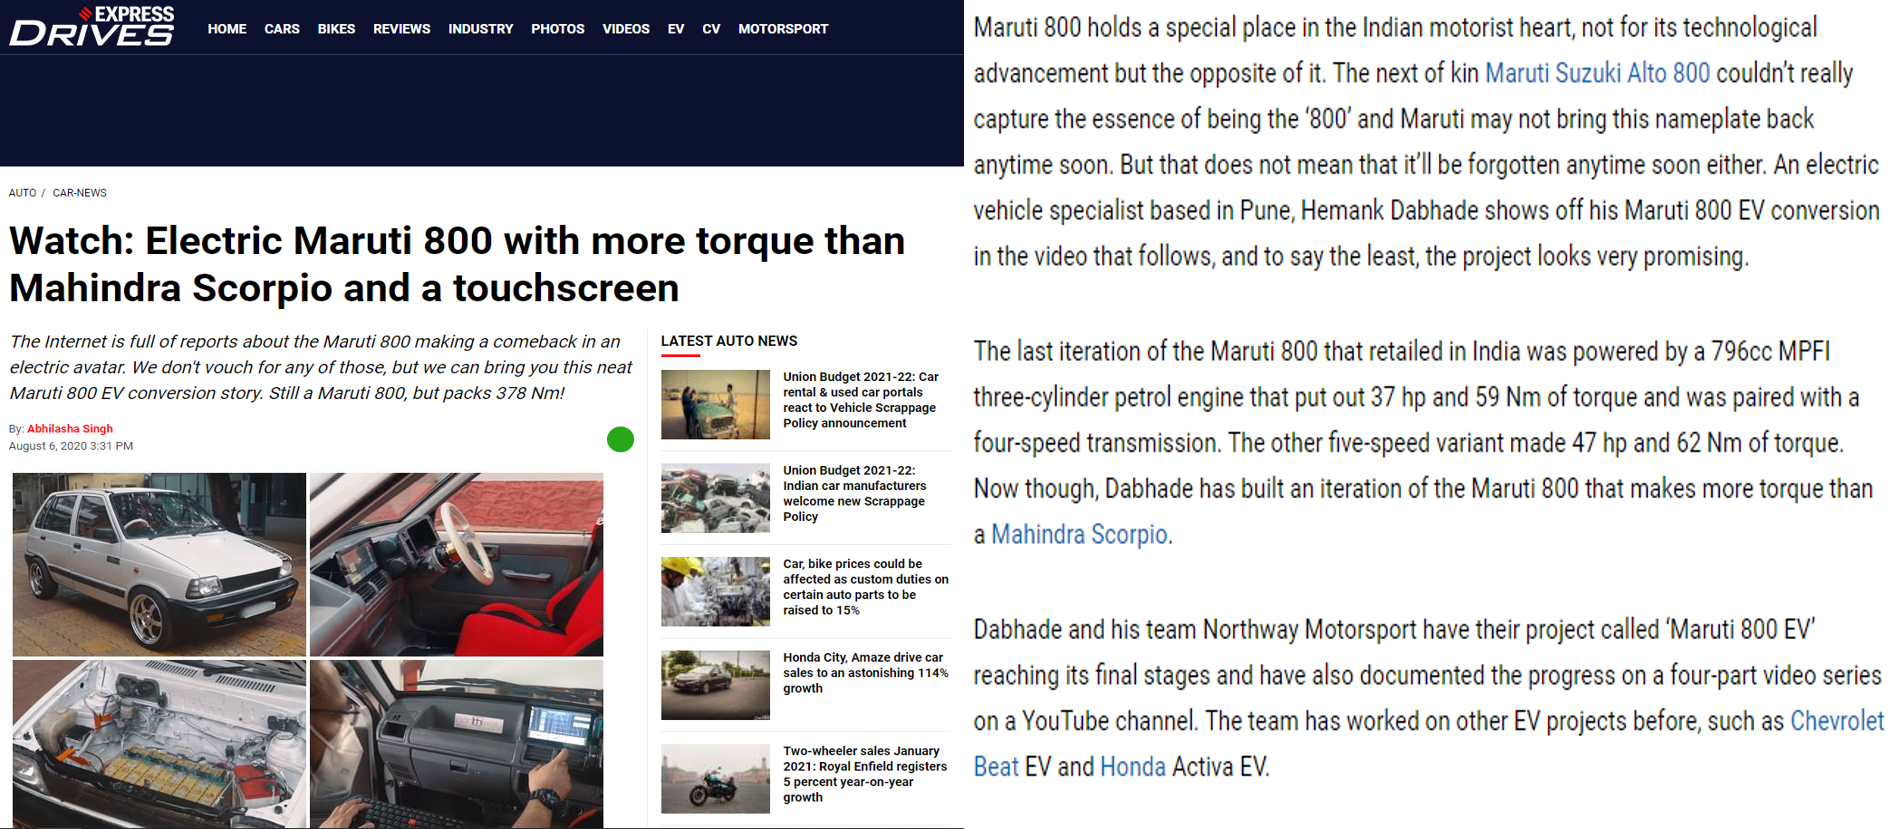 Financial Express M800 Coverage